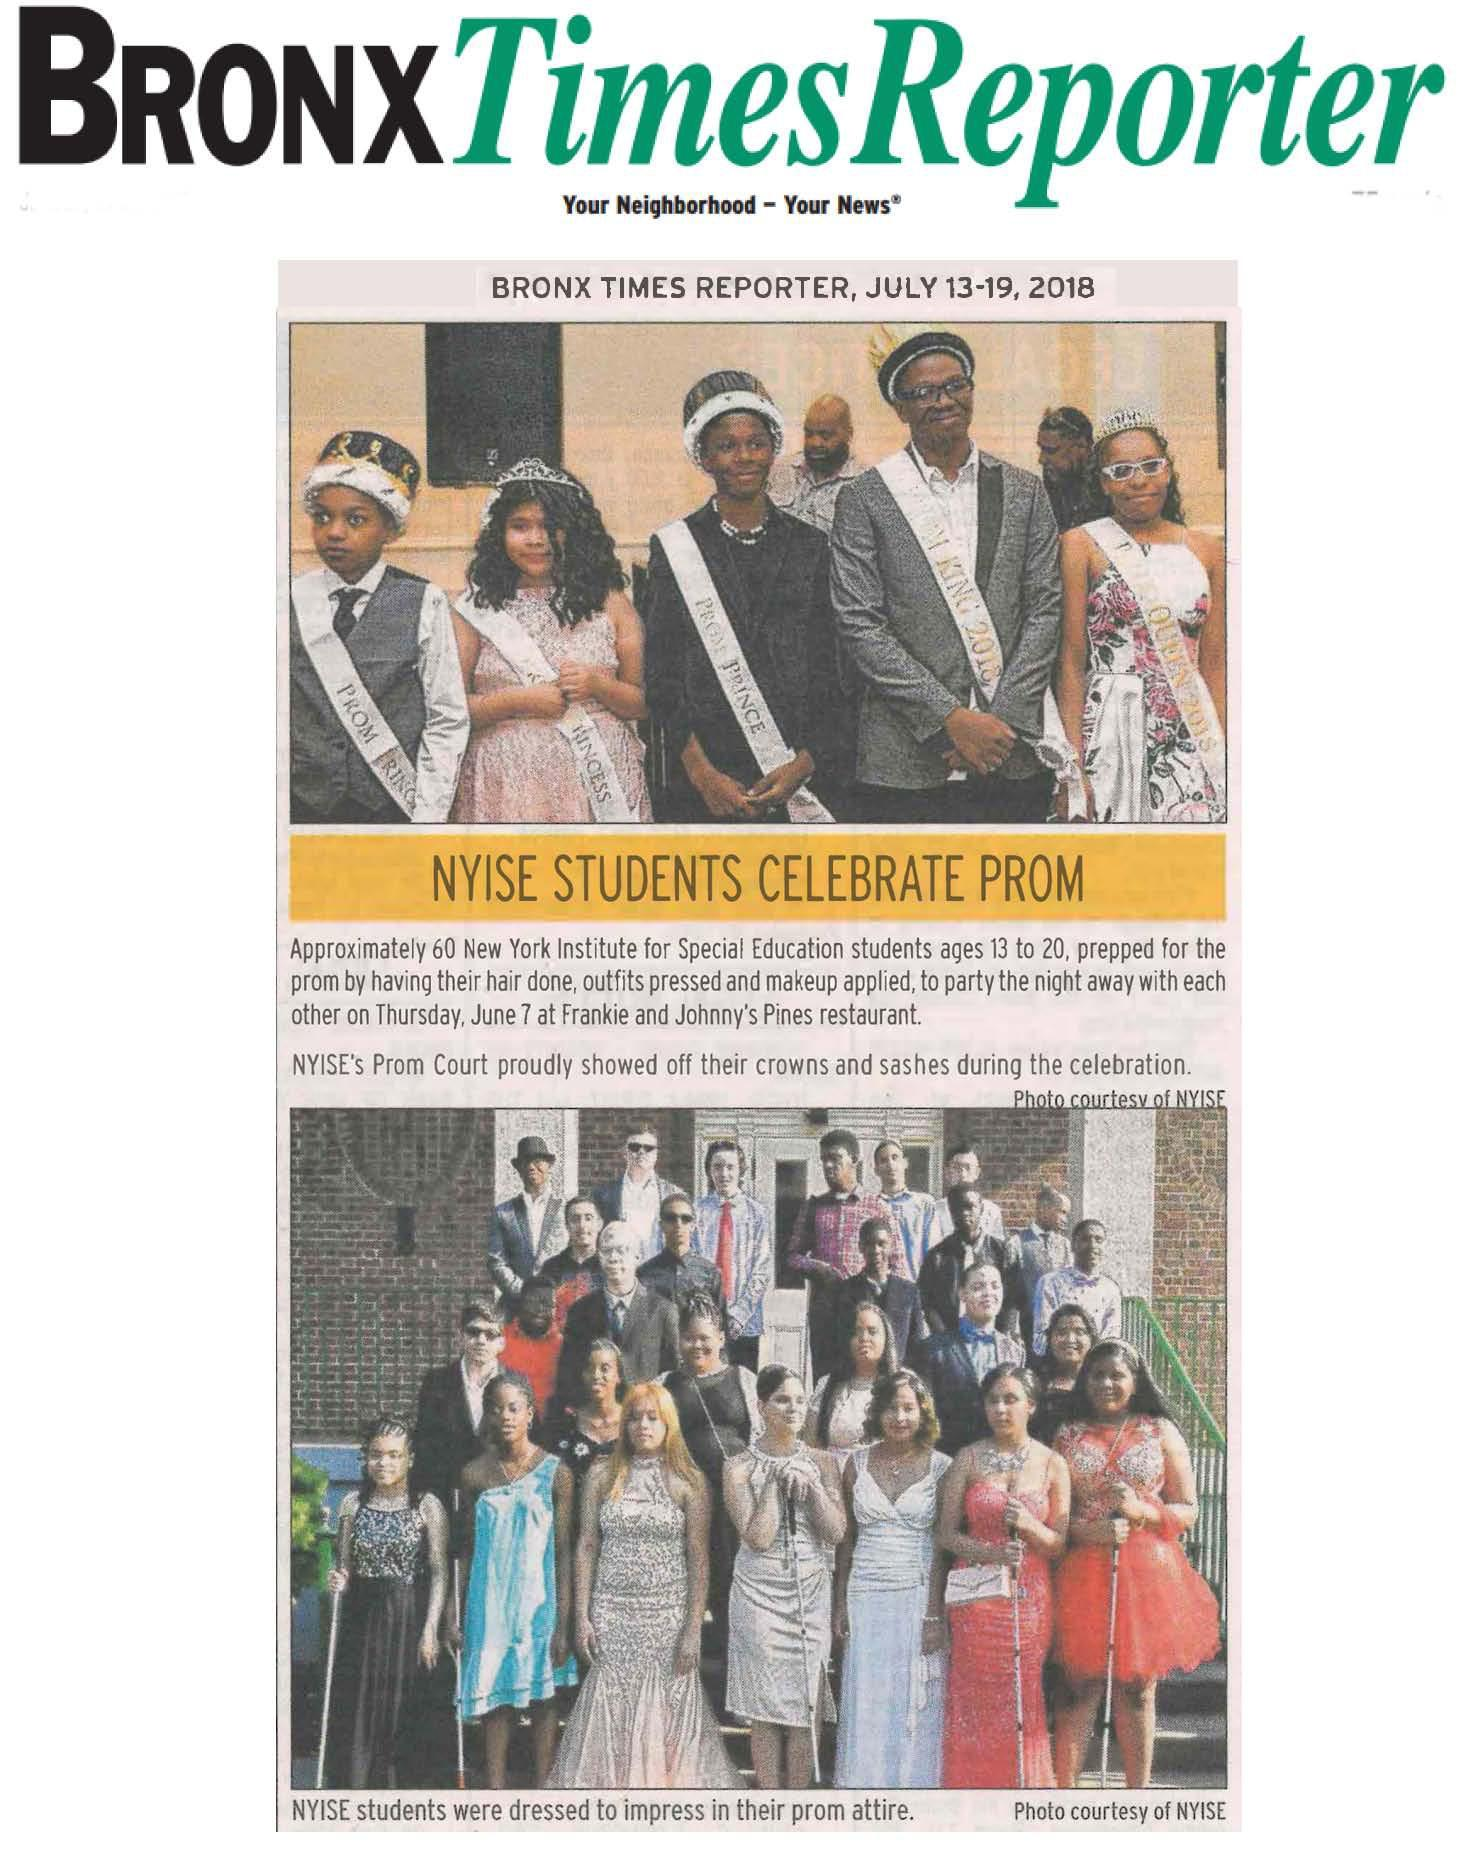 Approximately 60 New York Institute for Special Education students ages 13 to 20, prepped for the prom by having their hair done, outfits pressed and makeup applied, to party the night away with each other on Thursday, June 7 at Frankie and Johnny's Pines restaurant. NYISE's Prom Court proudly showed off their crowns and sashes during the celebration.